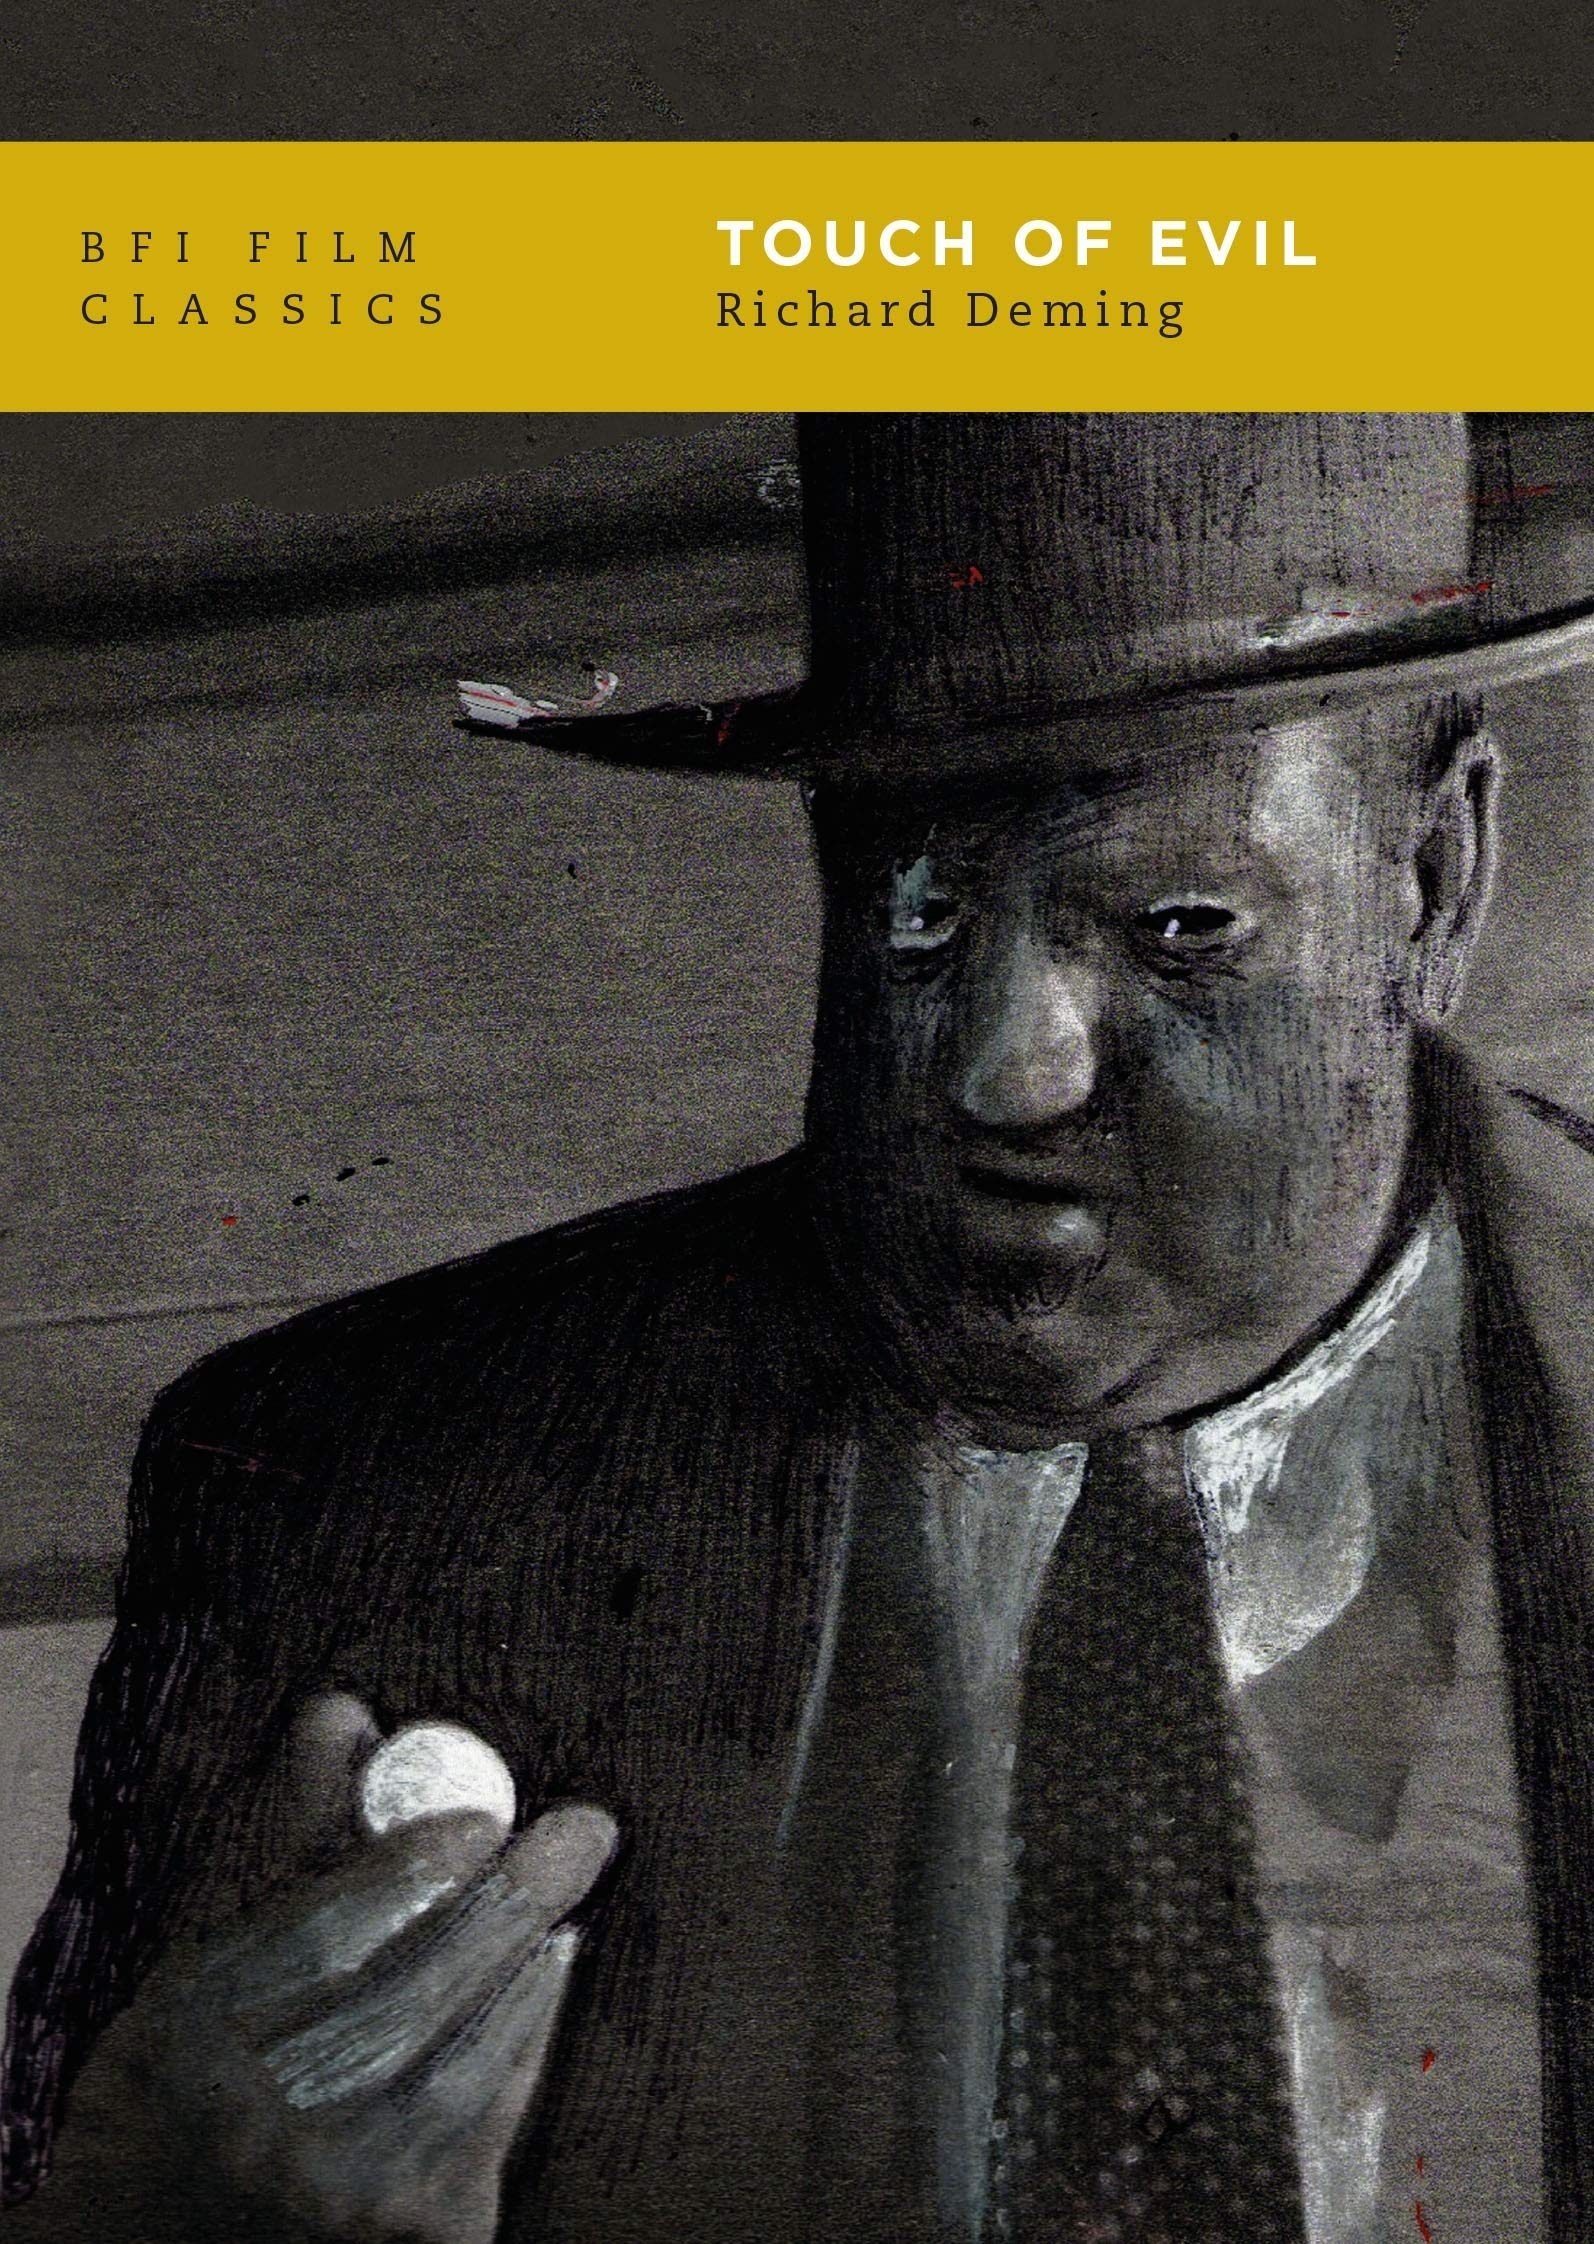 Buy PRE-ORDER Touch of Evil: BFI Film Classics